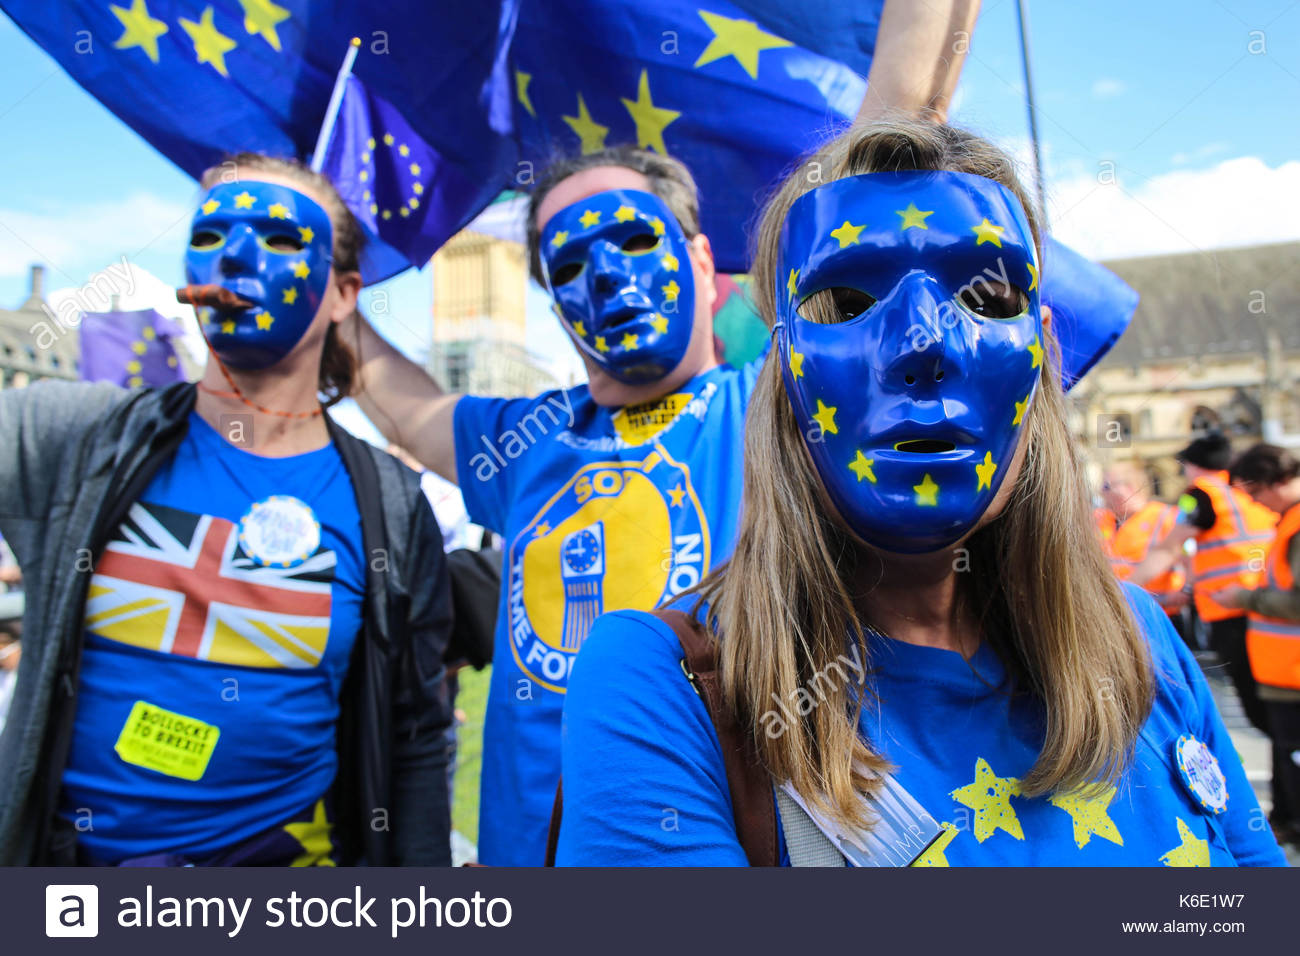 Three masked protesters at a rally in Central London against the Brexit process. - Stock Image